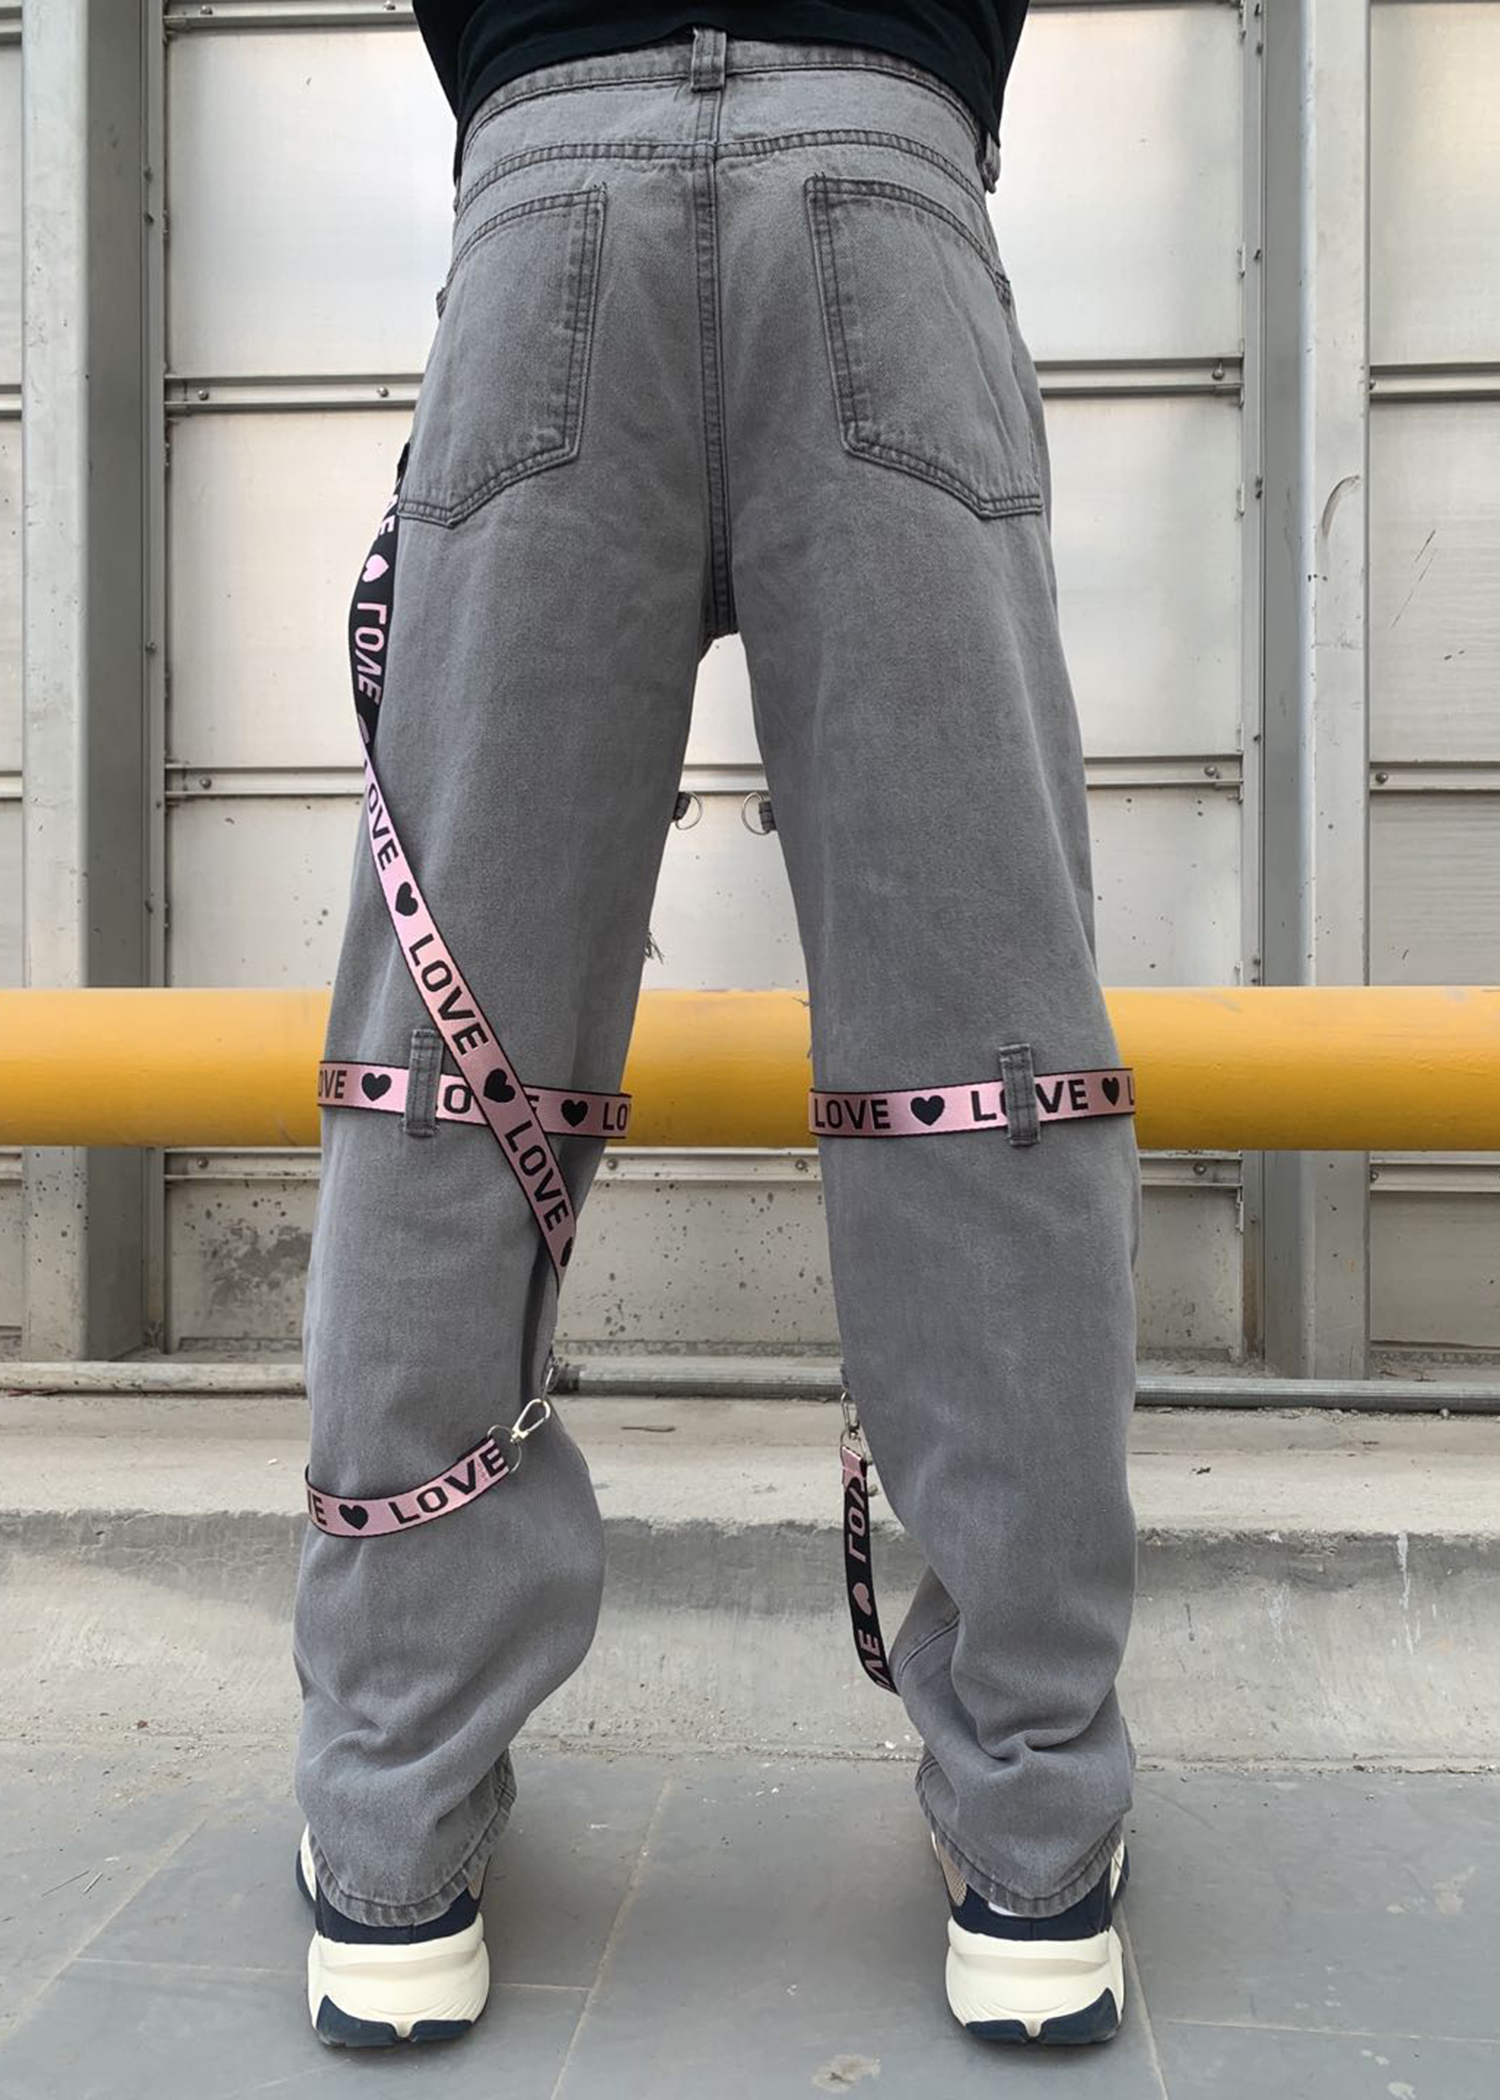 Locked And Loaded Jeans-belt And Stone-gray And Pink